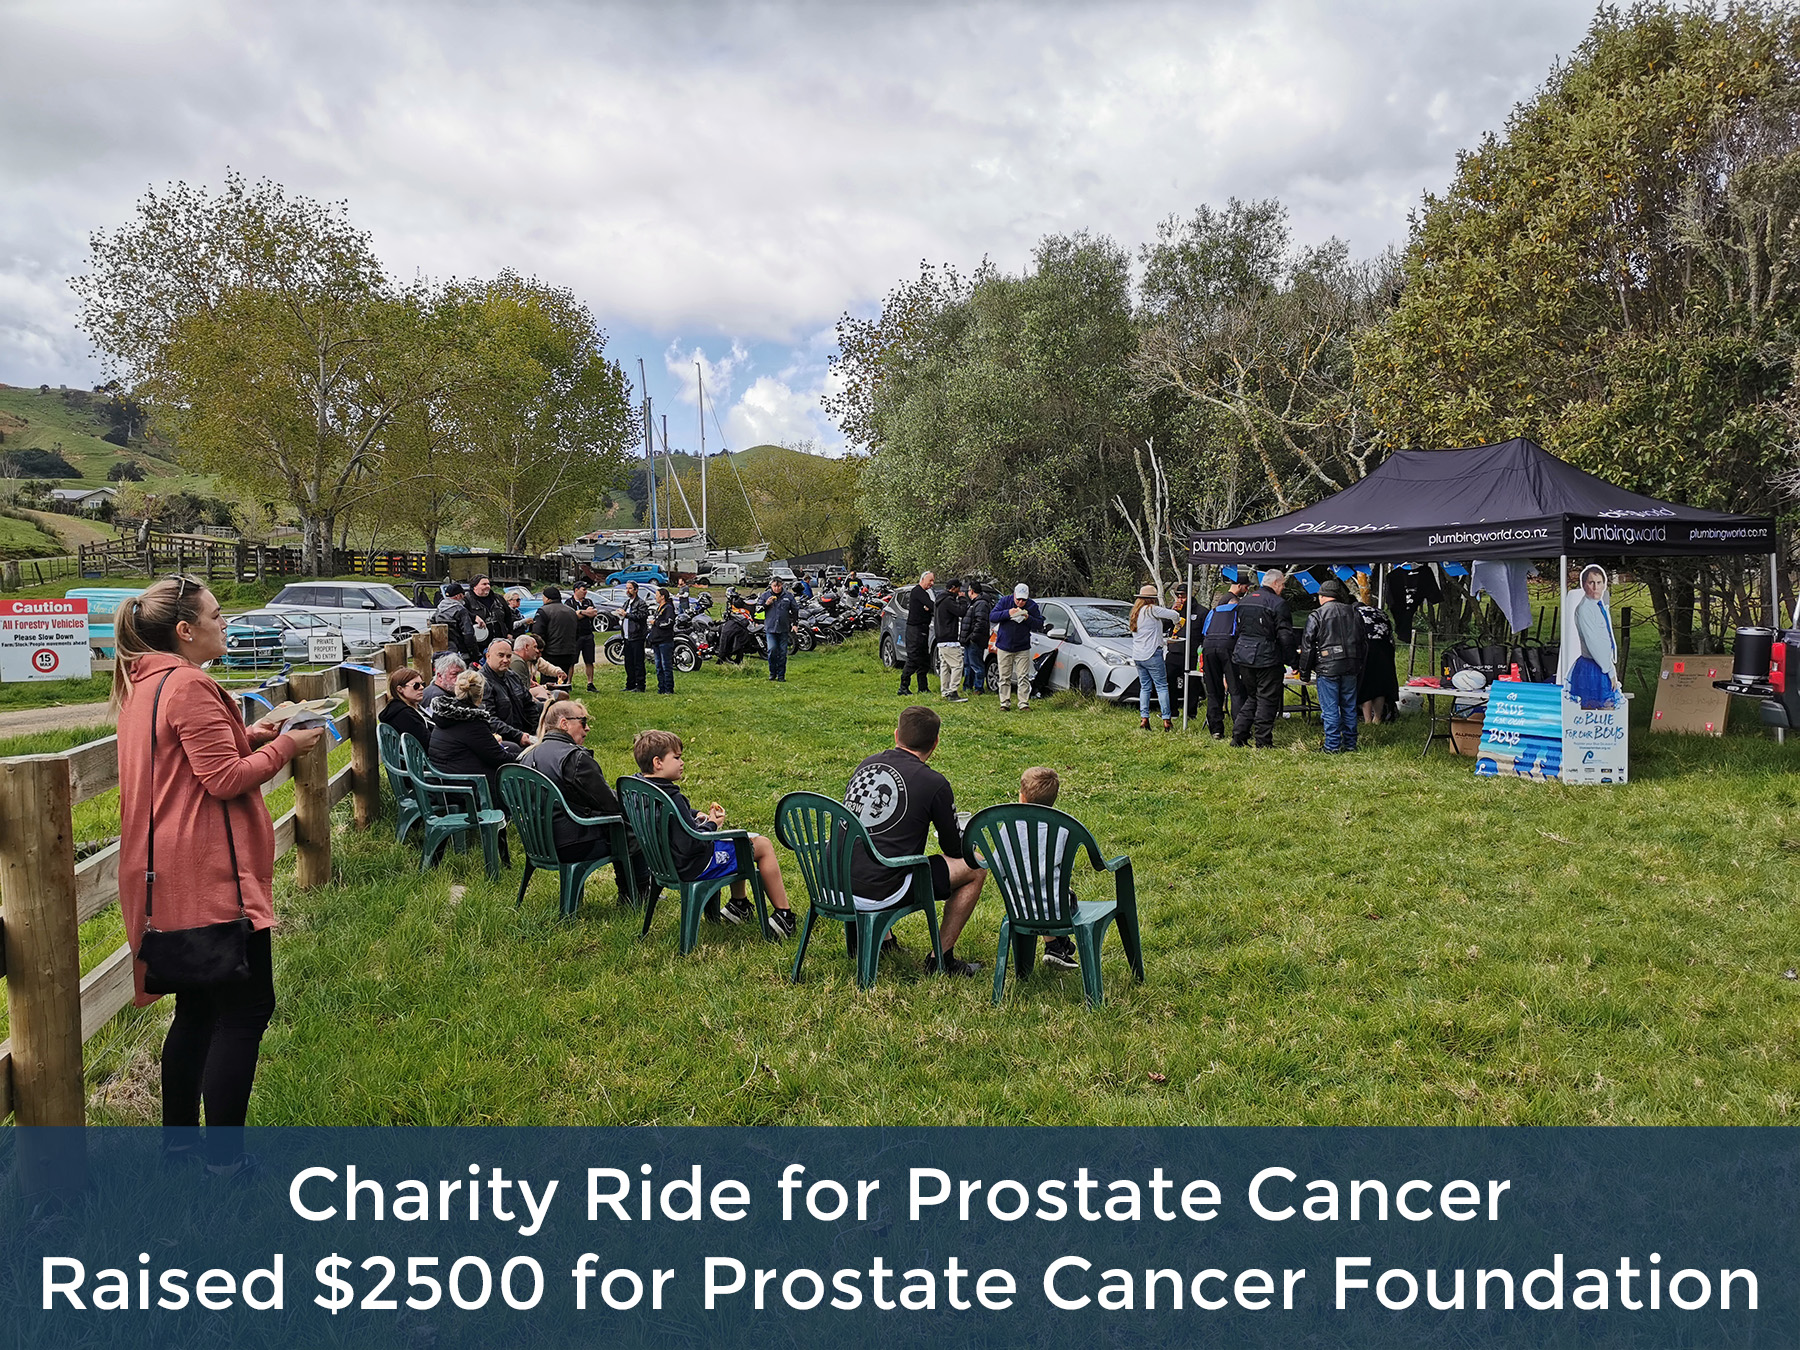 Charity Ride for Prostate Cancer